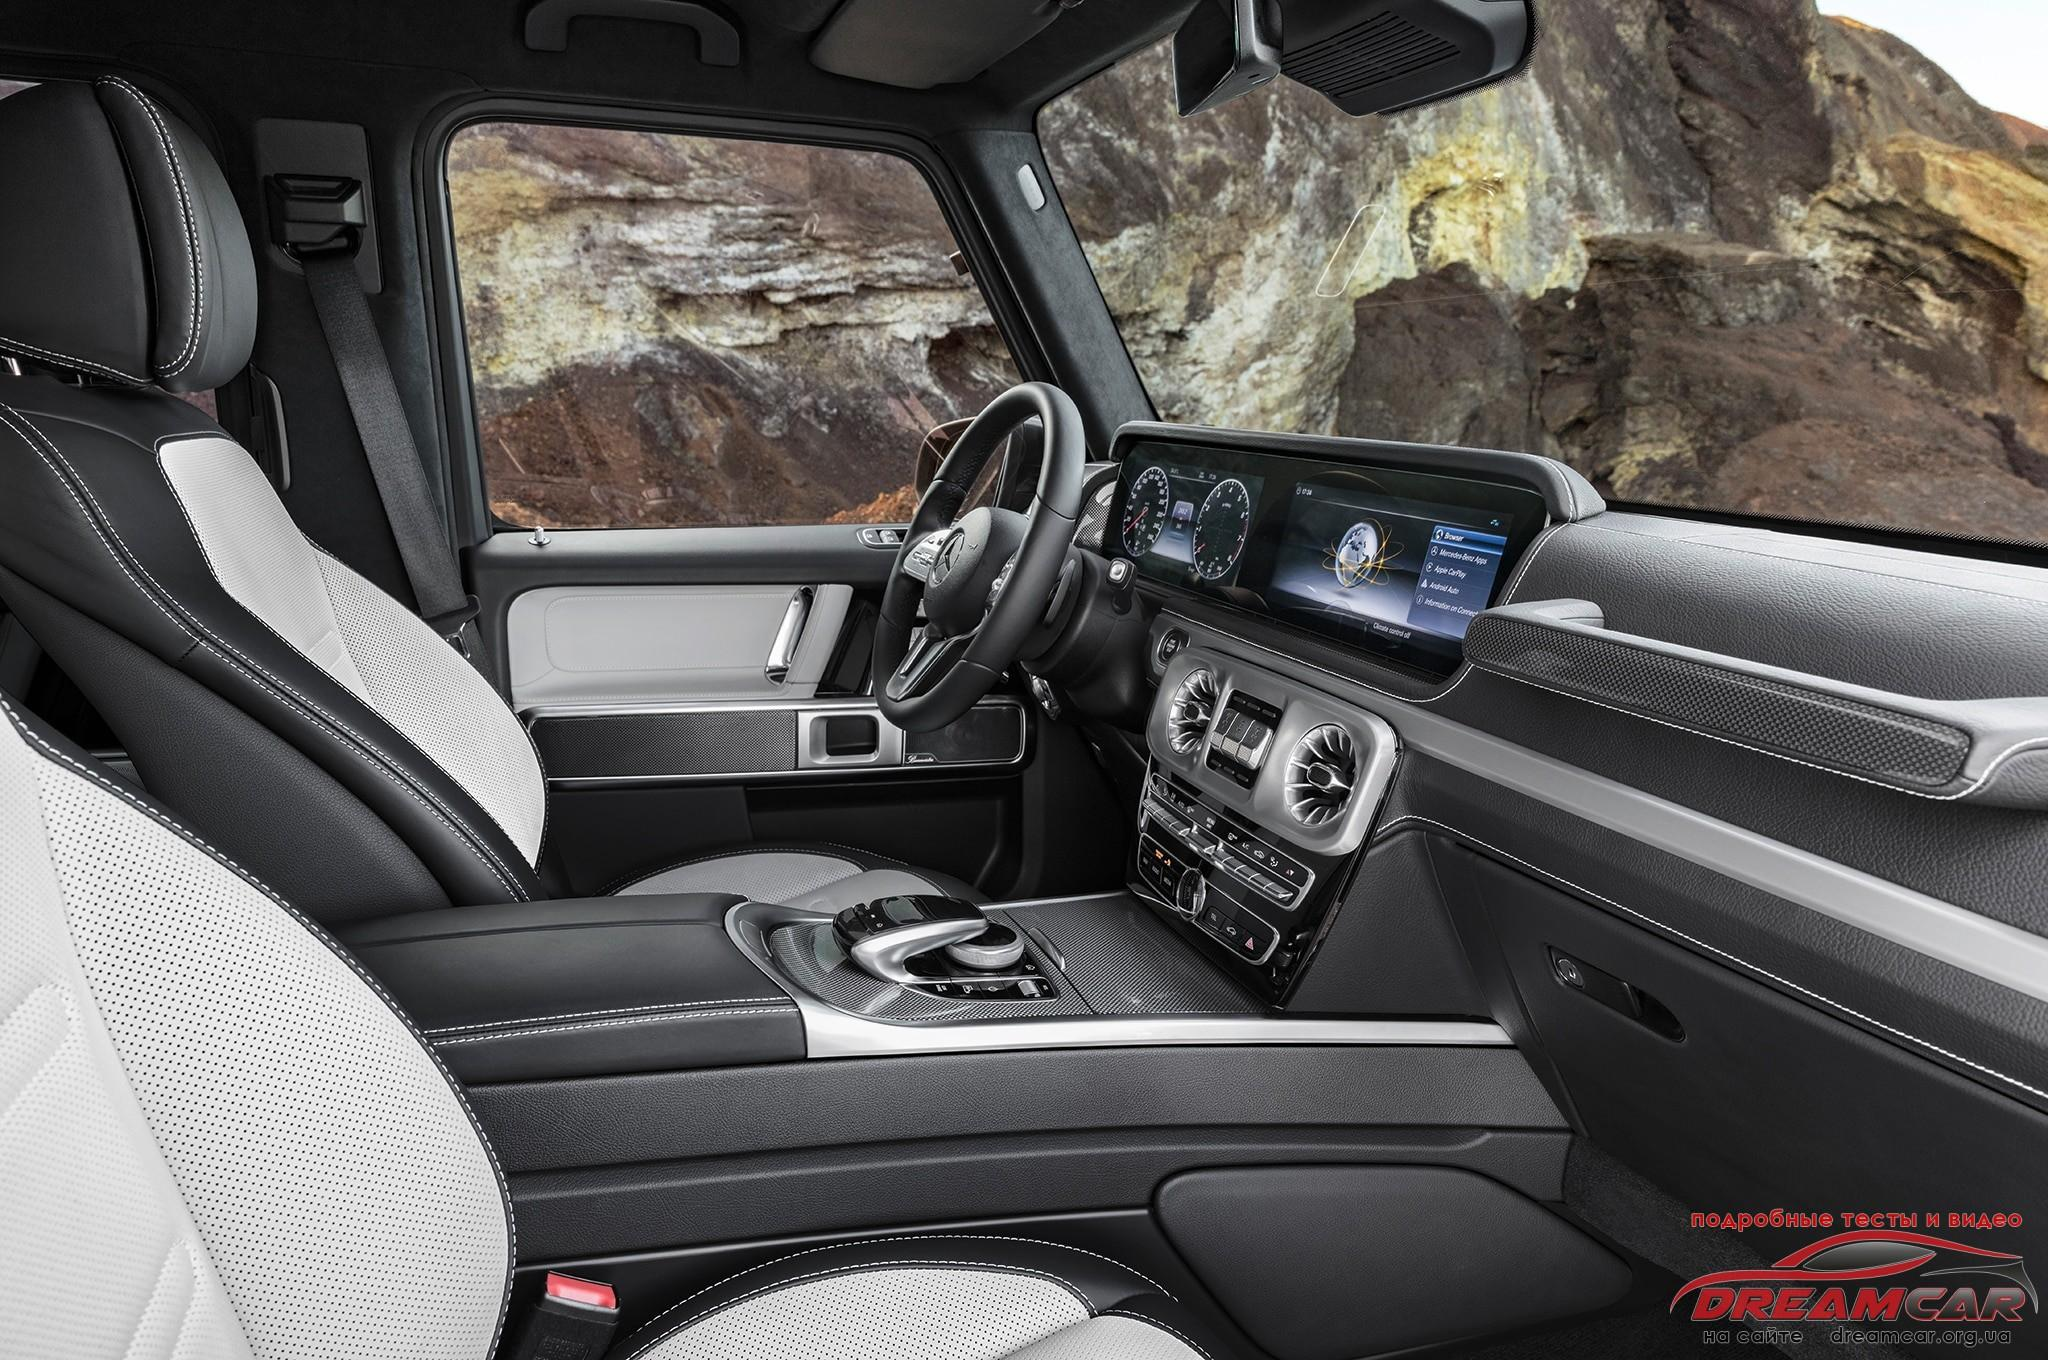 2019-mercedes-benz-g-class-dashboard